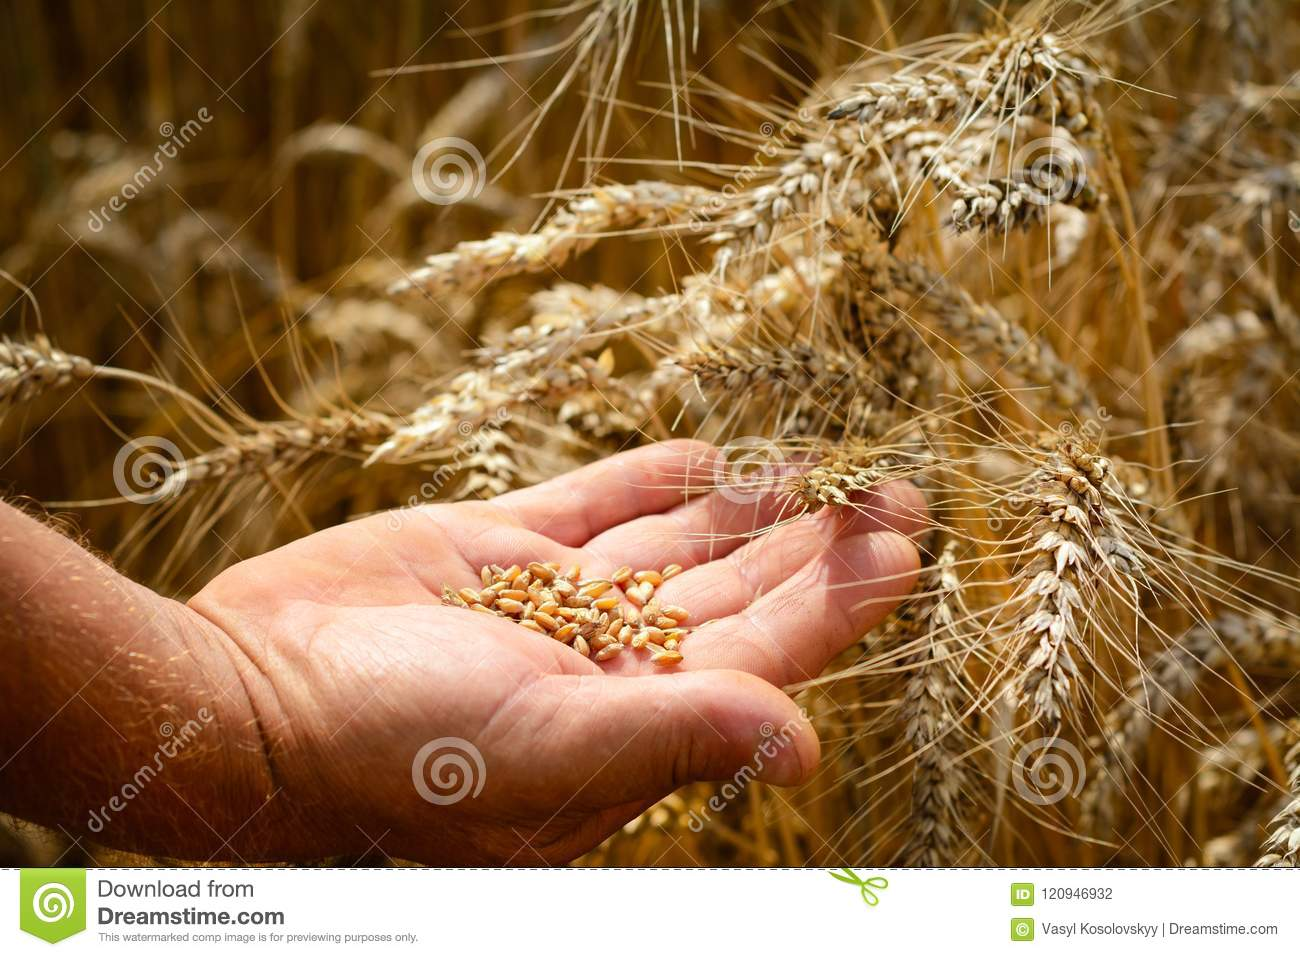 The farmer on a wheat field checks the maturity of wheat grain. The concept of farming.